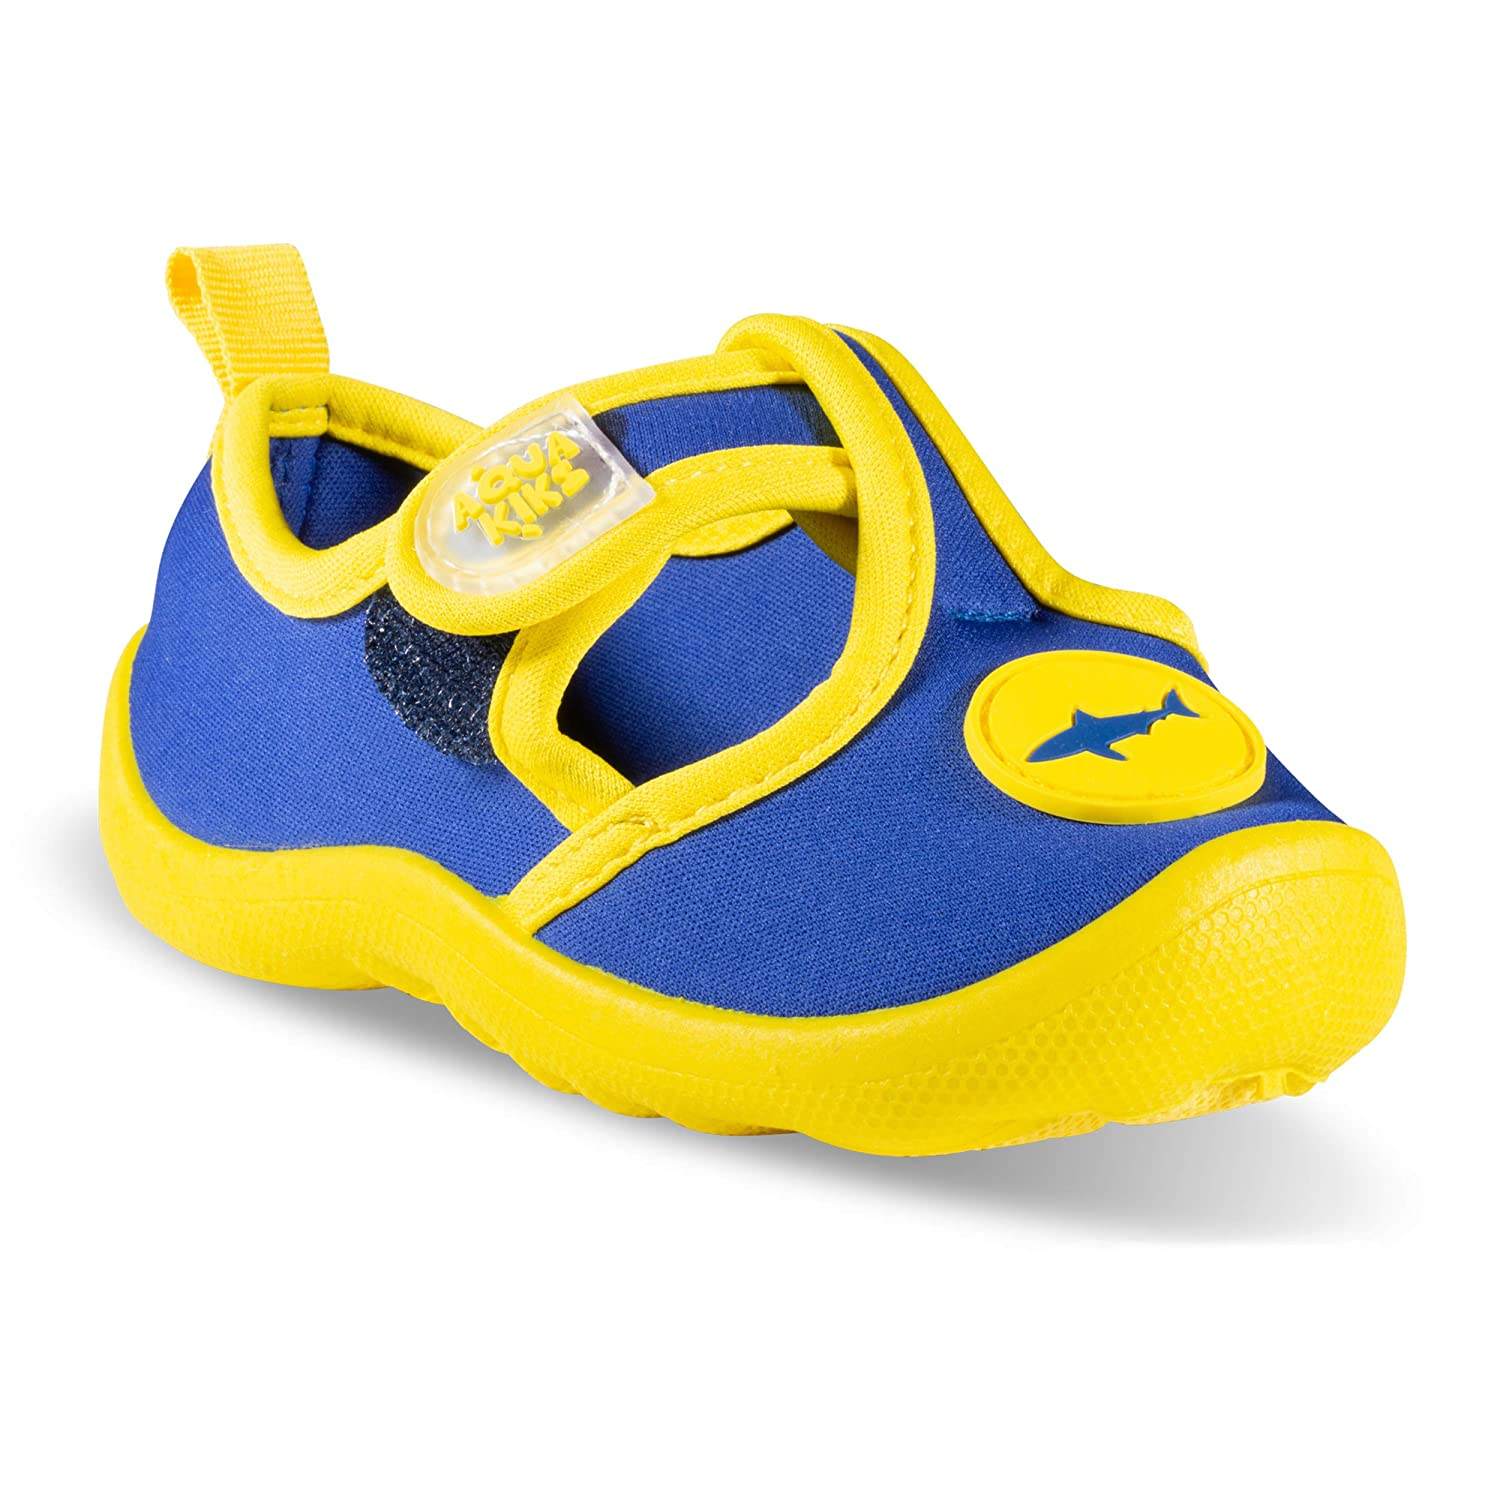 4d4a1a1e116ae Aqua Kiks Boys' Water Shoes - Navy/Yellow, 9 Toddler: Amazon.ca ...